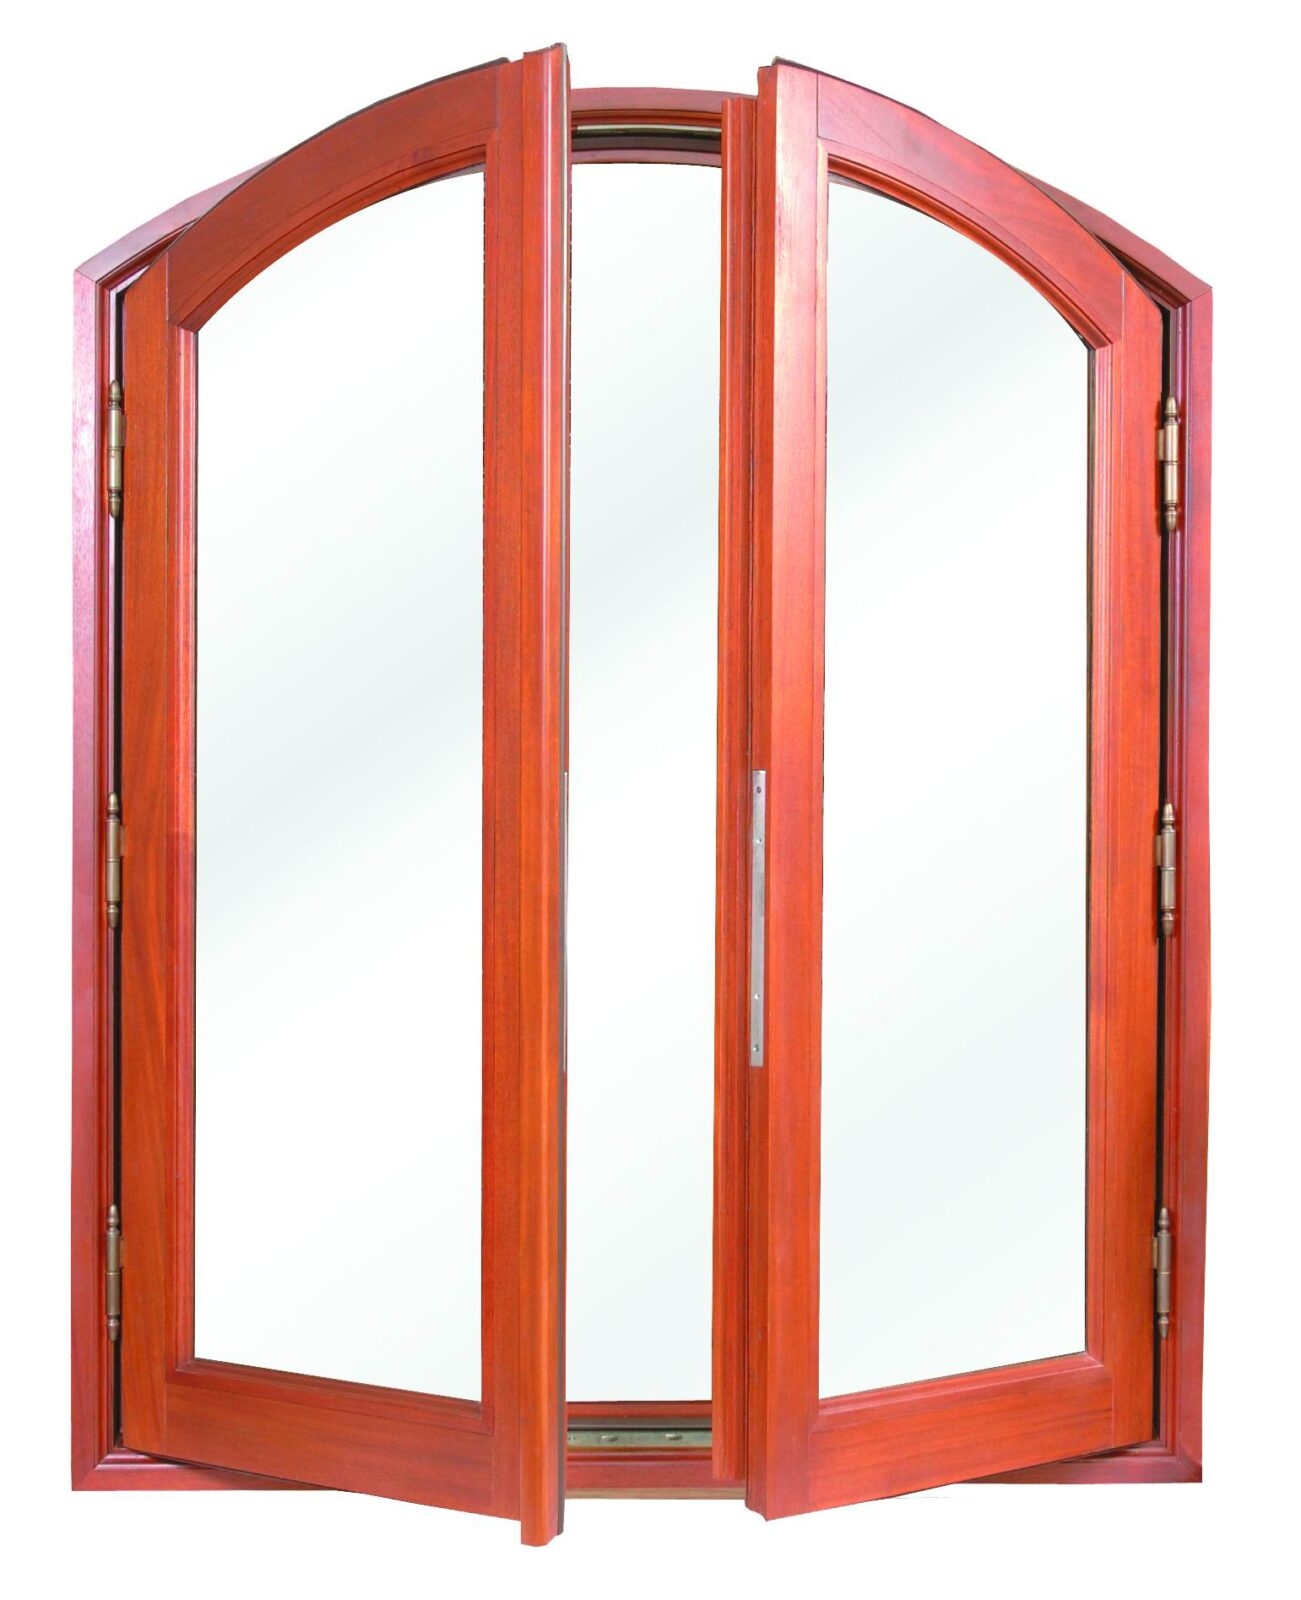 SAN PEDRO DOUBLE MAHOGANY CASEMENT WINDOWS